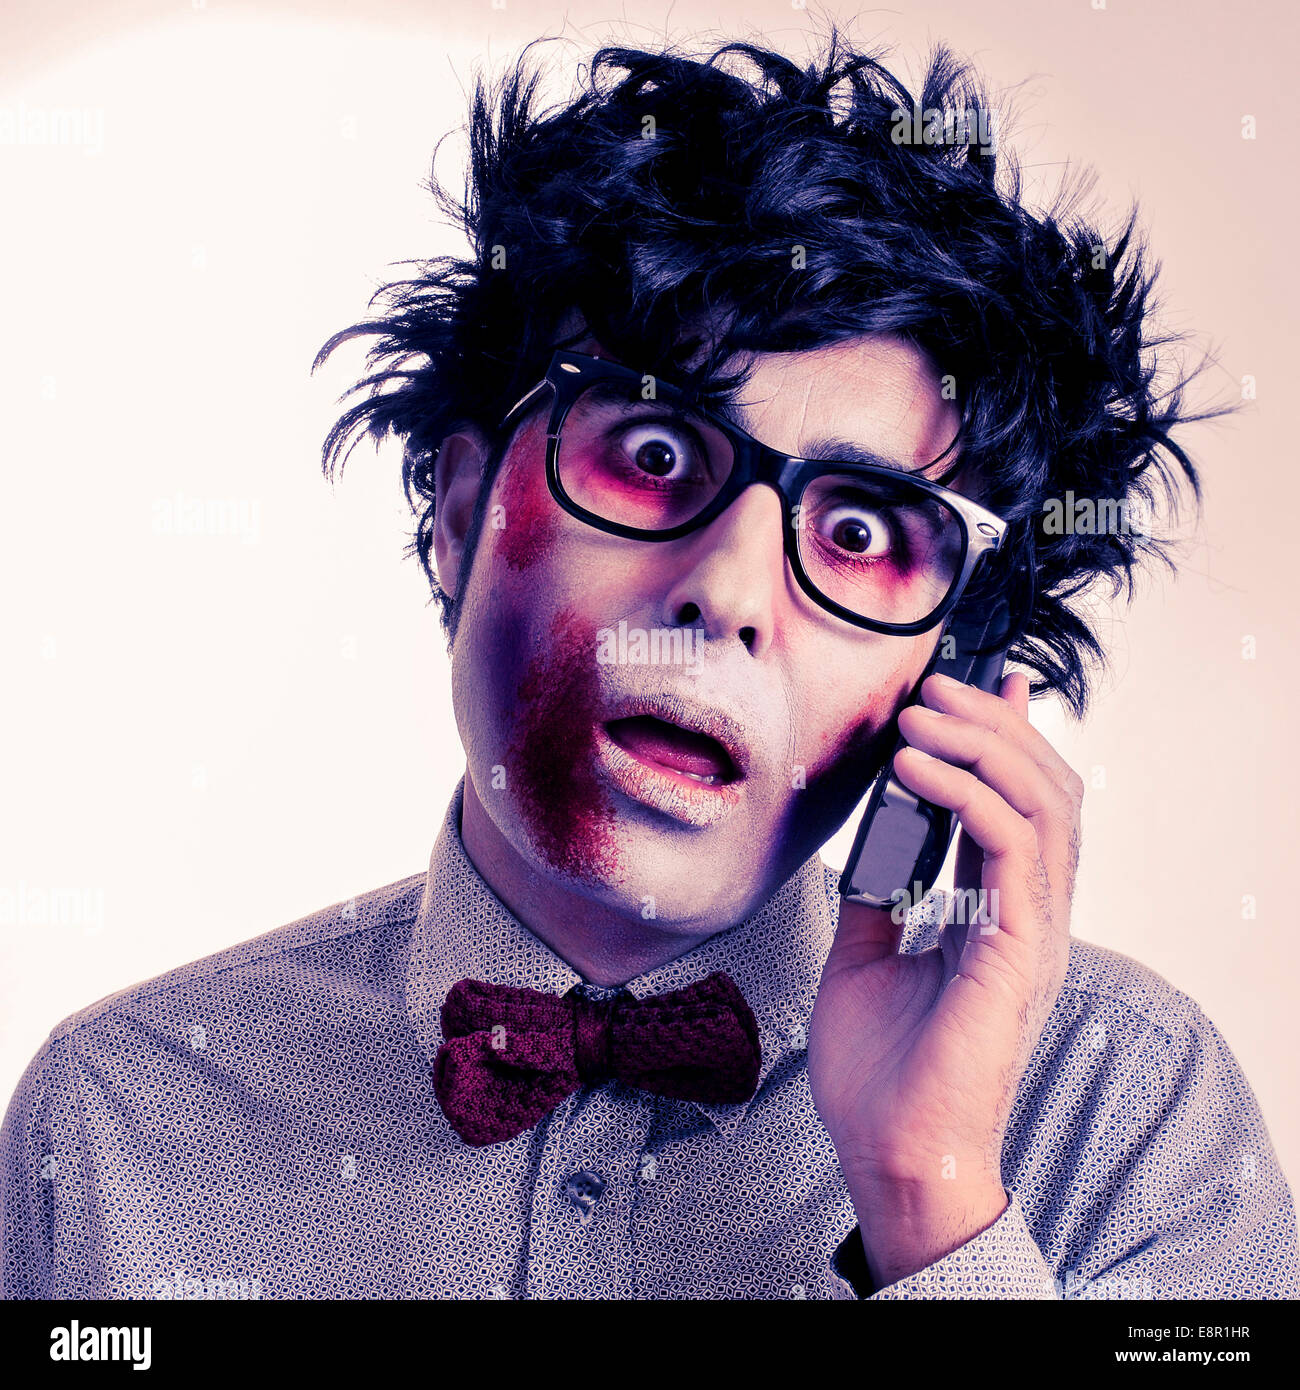 a scary hipster zombie with black plastic-rimmed eyeglasses talking on the phone, with a retro effect - Stock Image